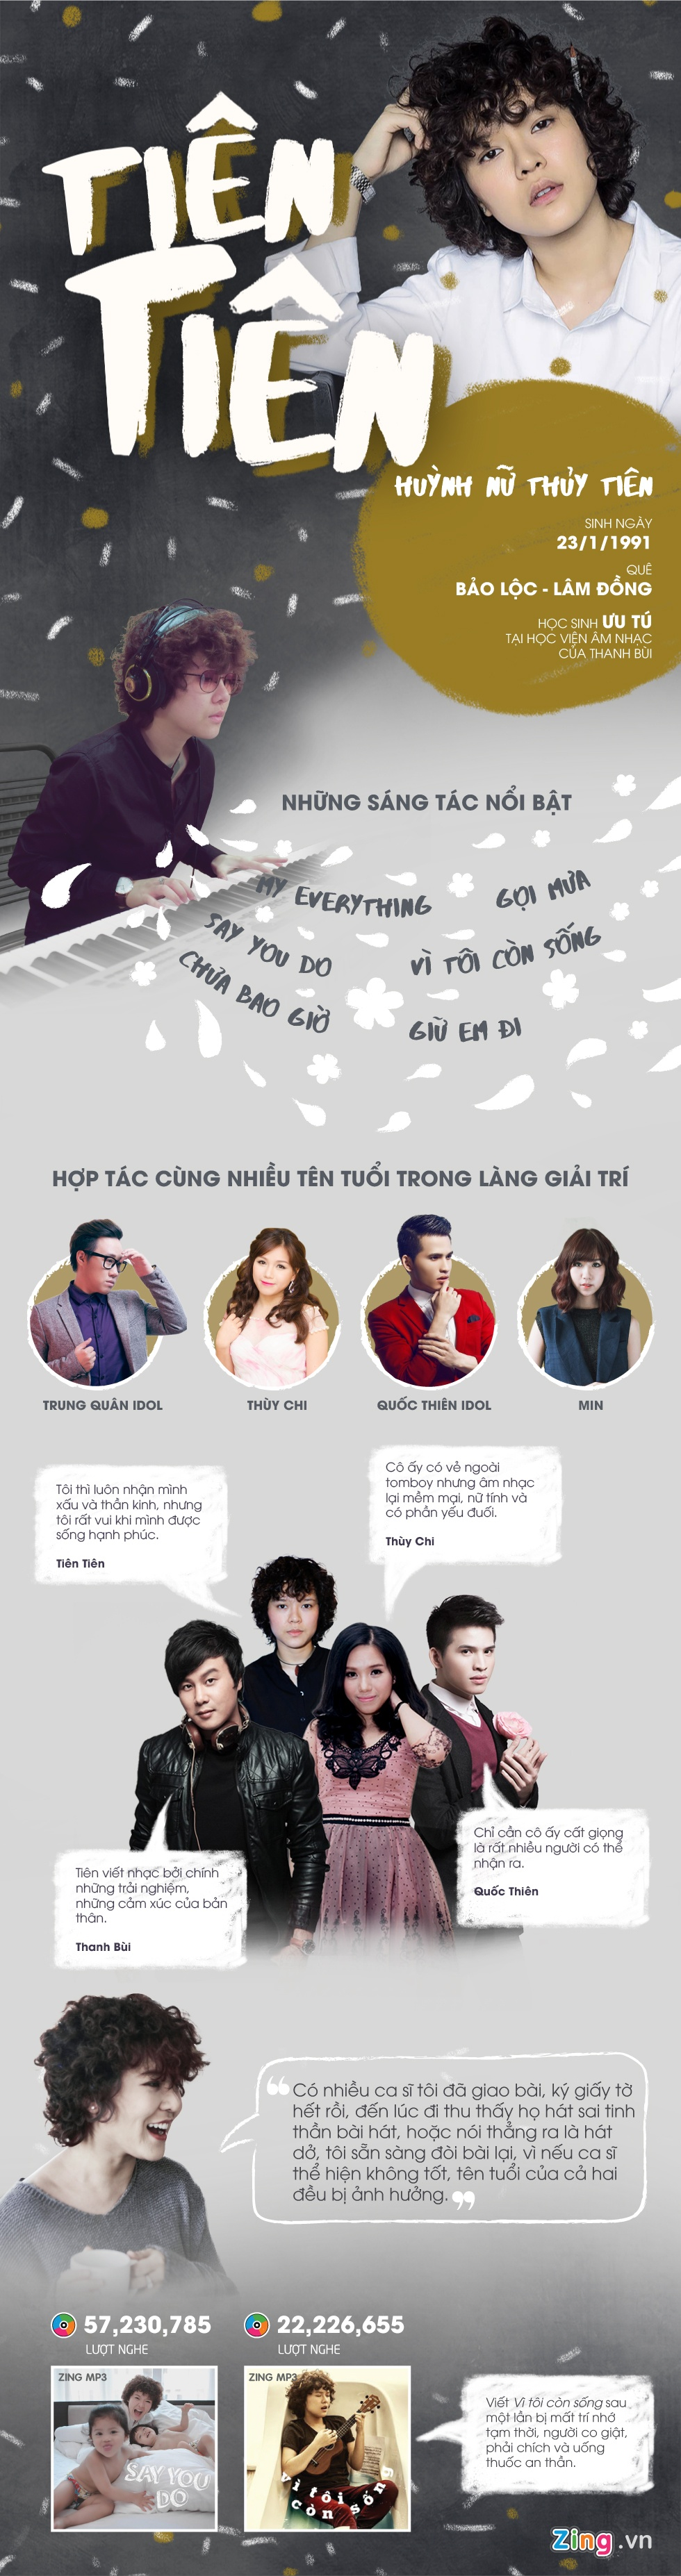 Tien Tien: Nghe si moi an tuong nhat Vpop 2015 hinh anh 1